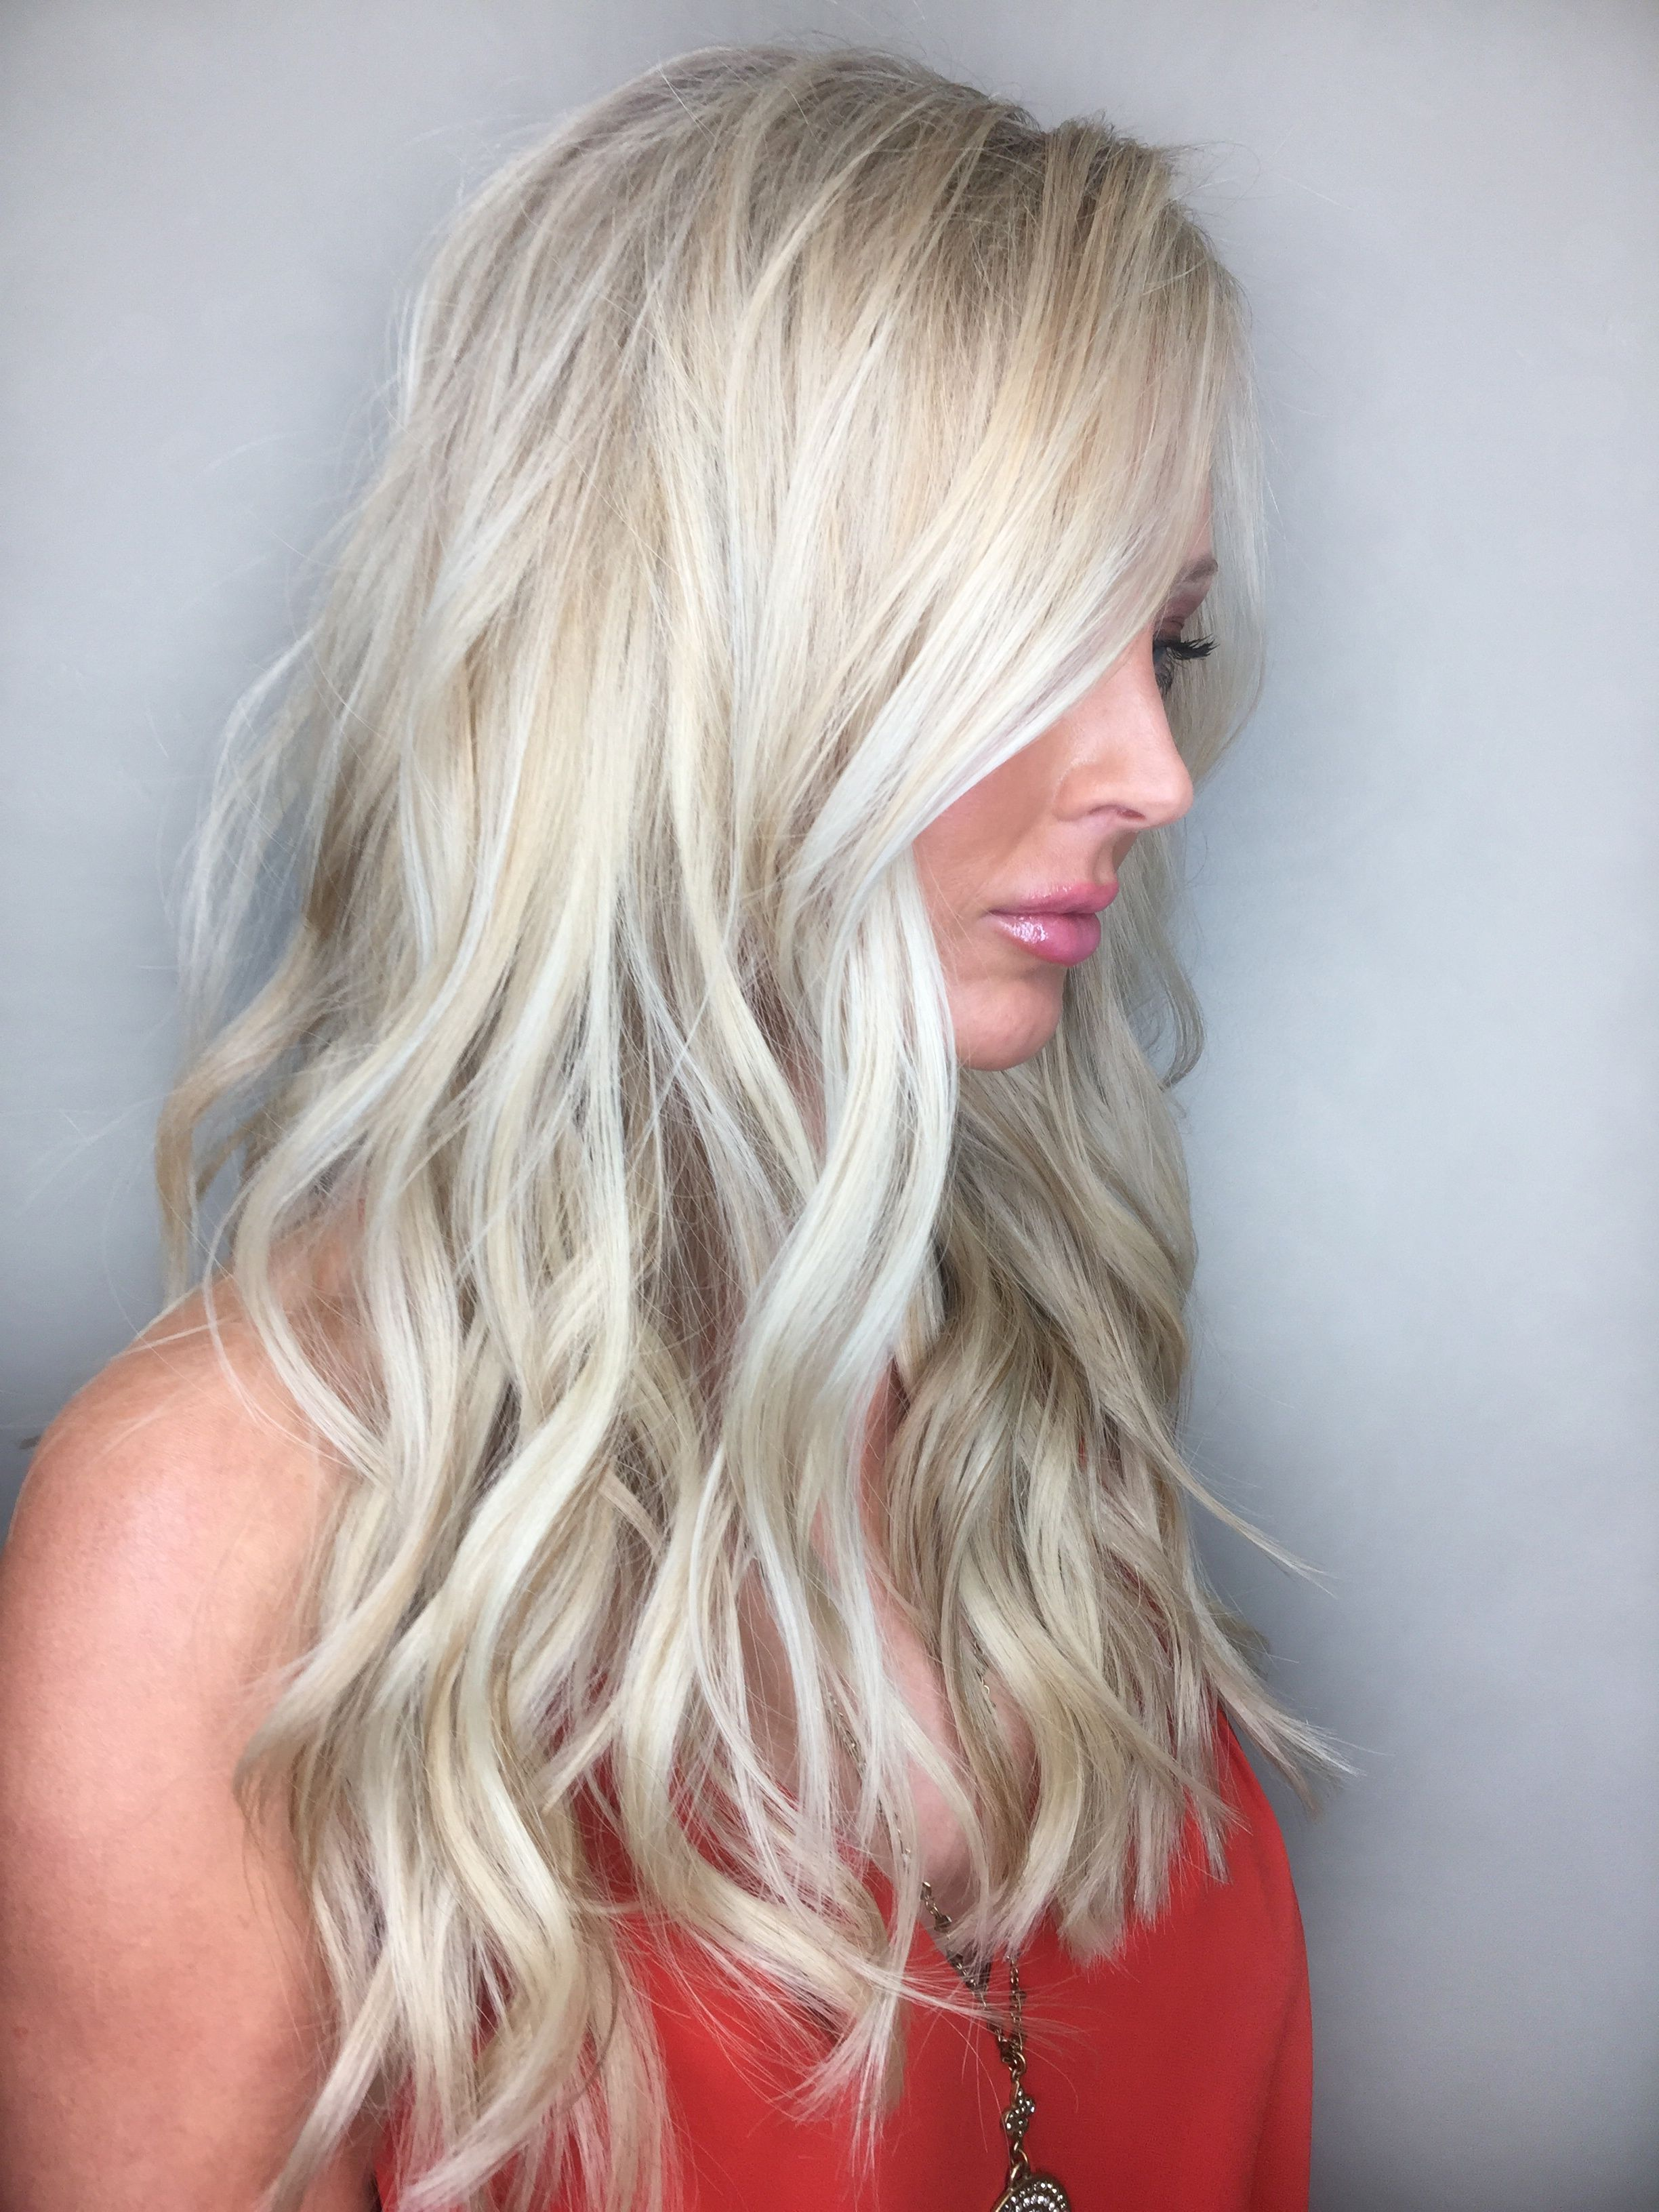 Ice & Butter Blonde 2 Rows of Natural Beaded Rows hair extensions